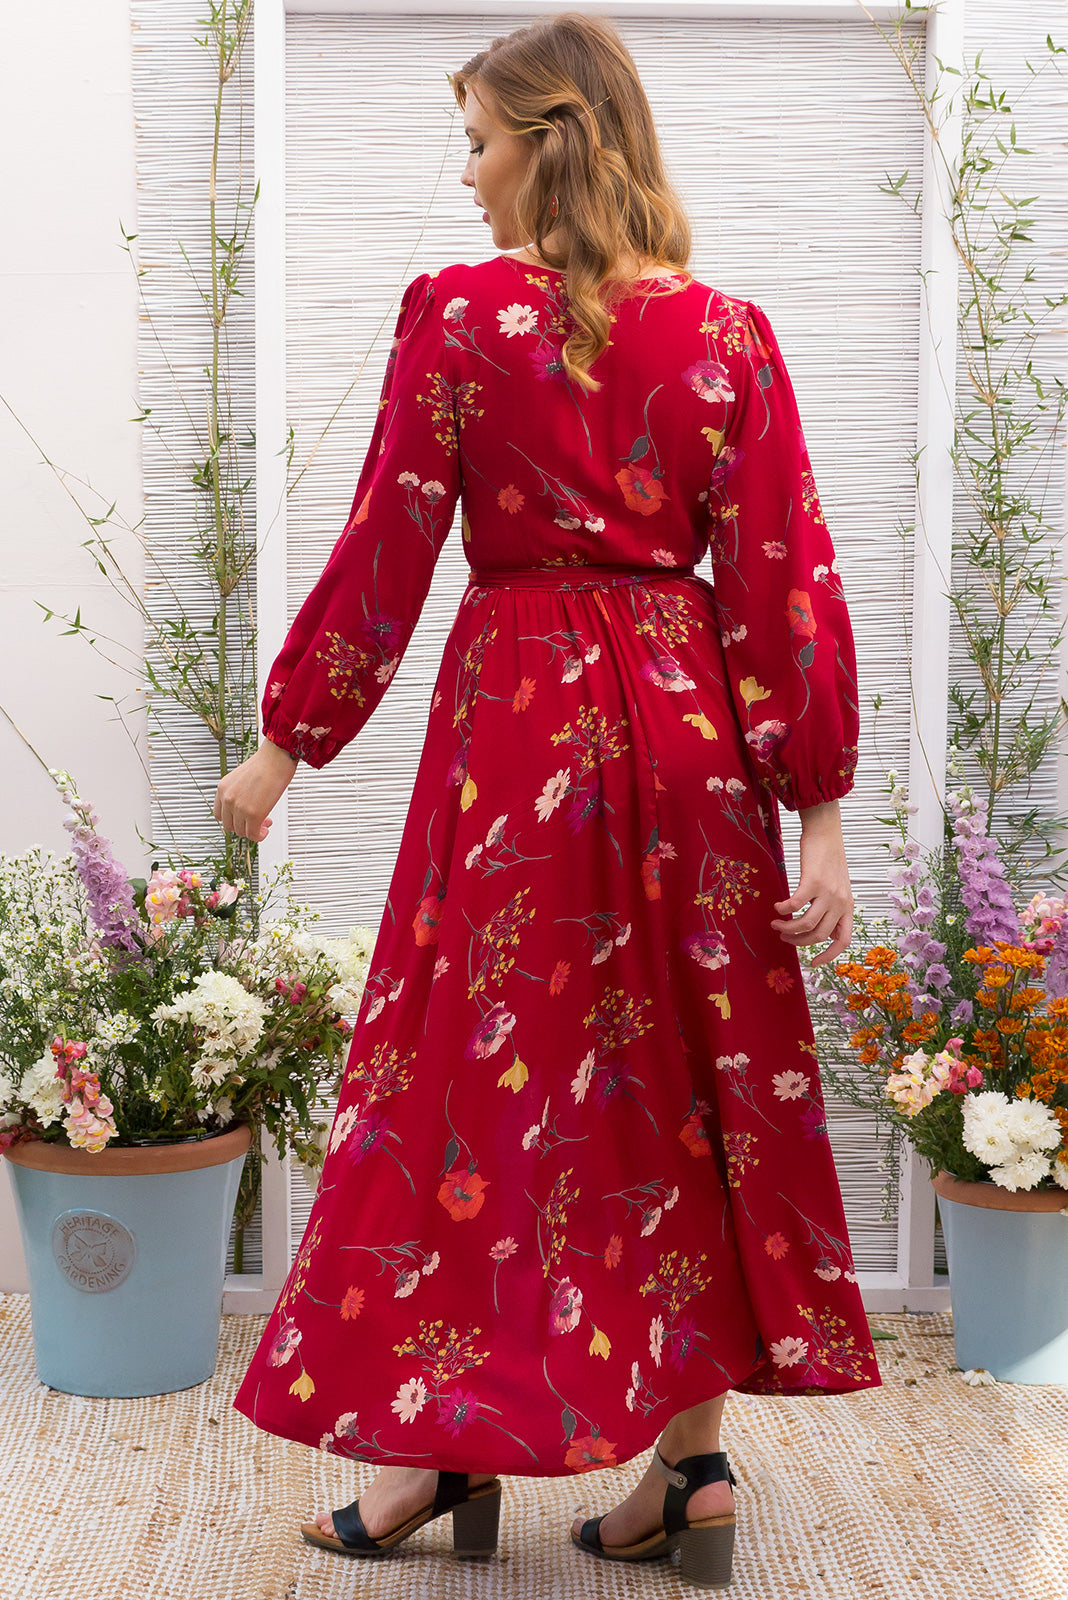 Daydreamer Ruby Red Maxi Wrap Dress with a full length sleeve in a wrap around style in a bold red floral print on a soft woven rayon fabric